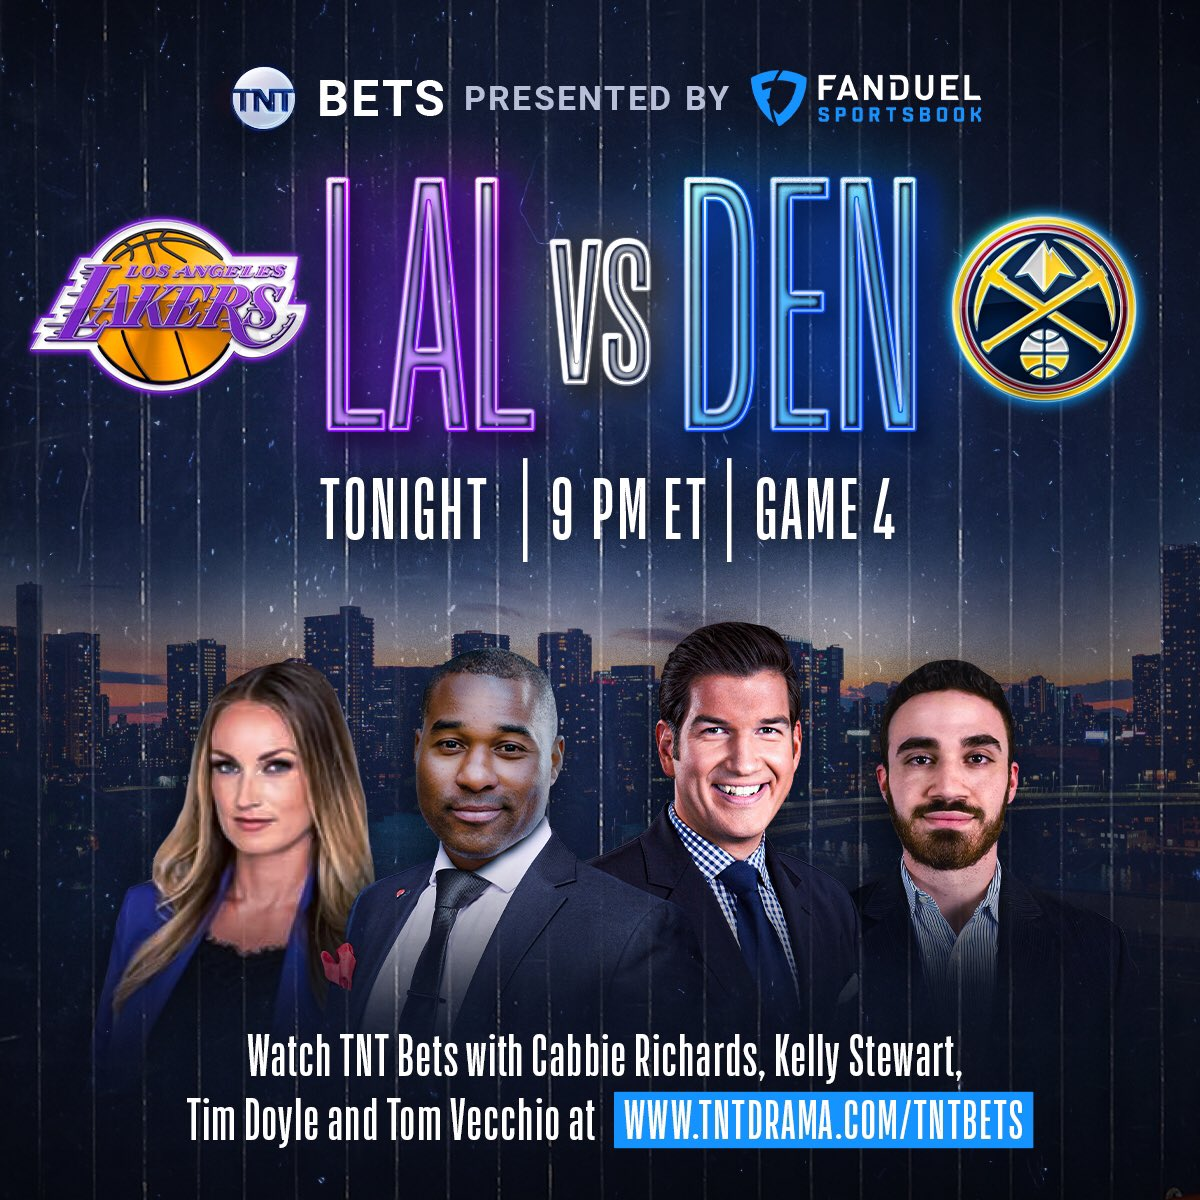 🚨 TONIGHT 🏀 Join me, @kellyinvegas, @Cabbie & @DFS_Tom tonight during Game 4 of the Western Conference Finals! @FDSportsbook.  I'm posting my picks 💰 15 minutes before tip  ⏰: 9PM ET 🖥: https://t.co/pKgHzCp51y  @NBAonTNT | #NBAPlayoffs https://t.co/6RWlsgYSFr